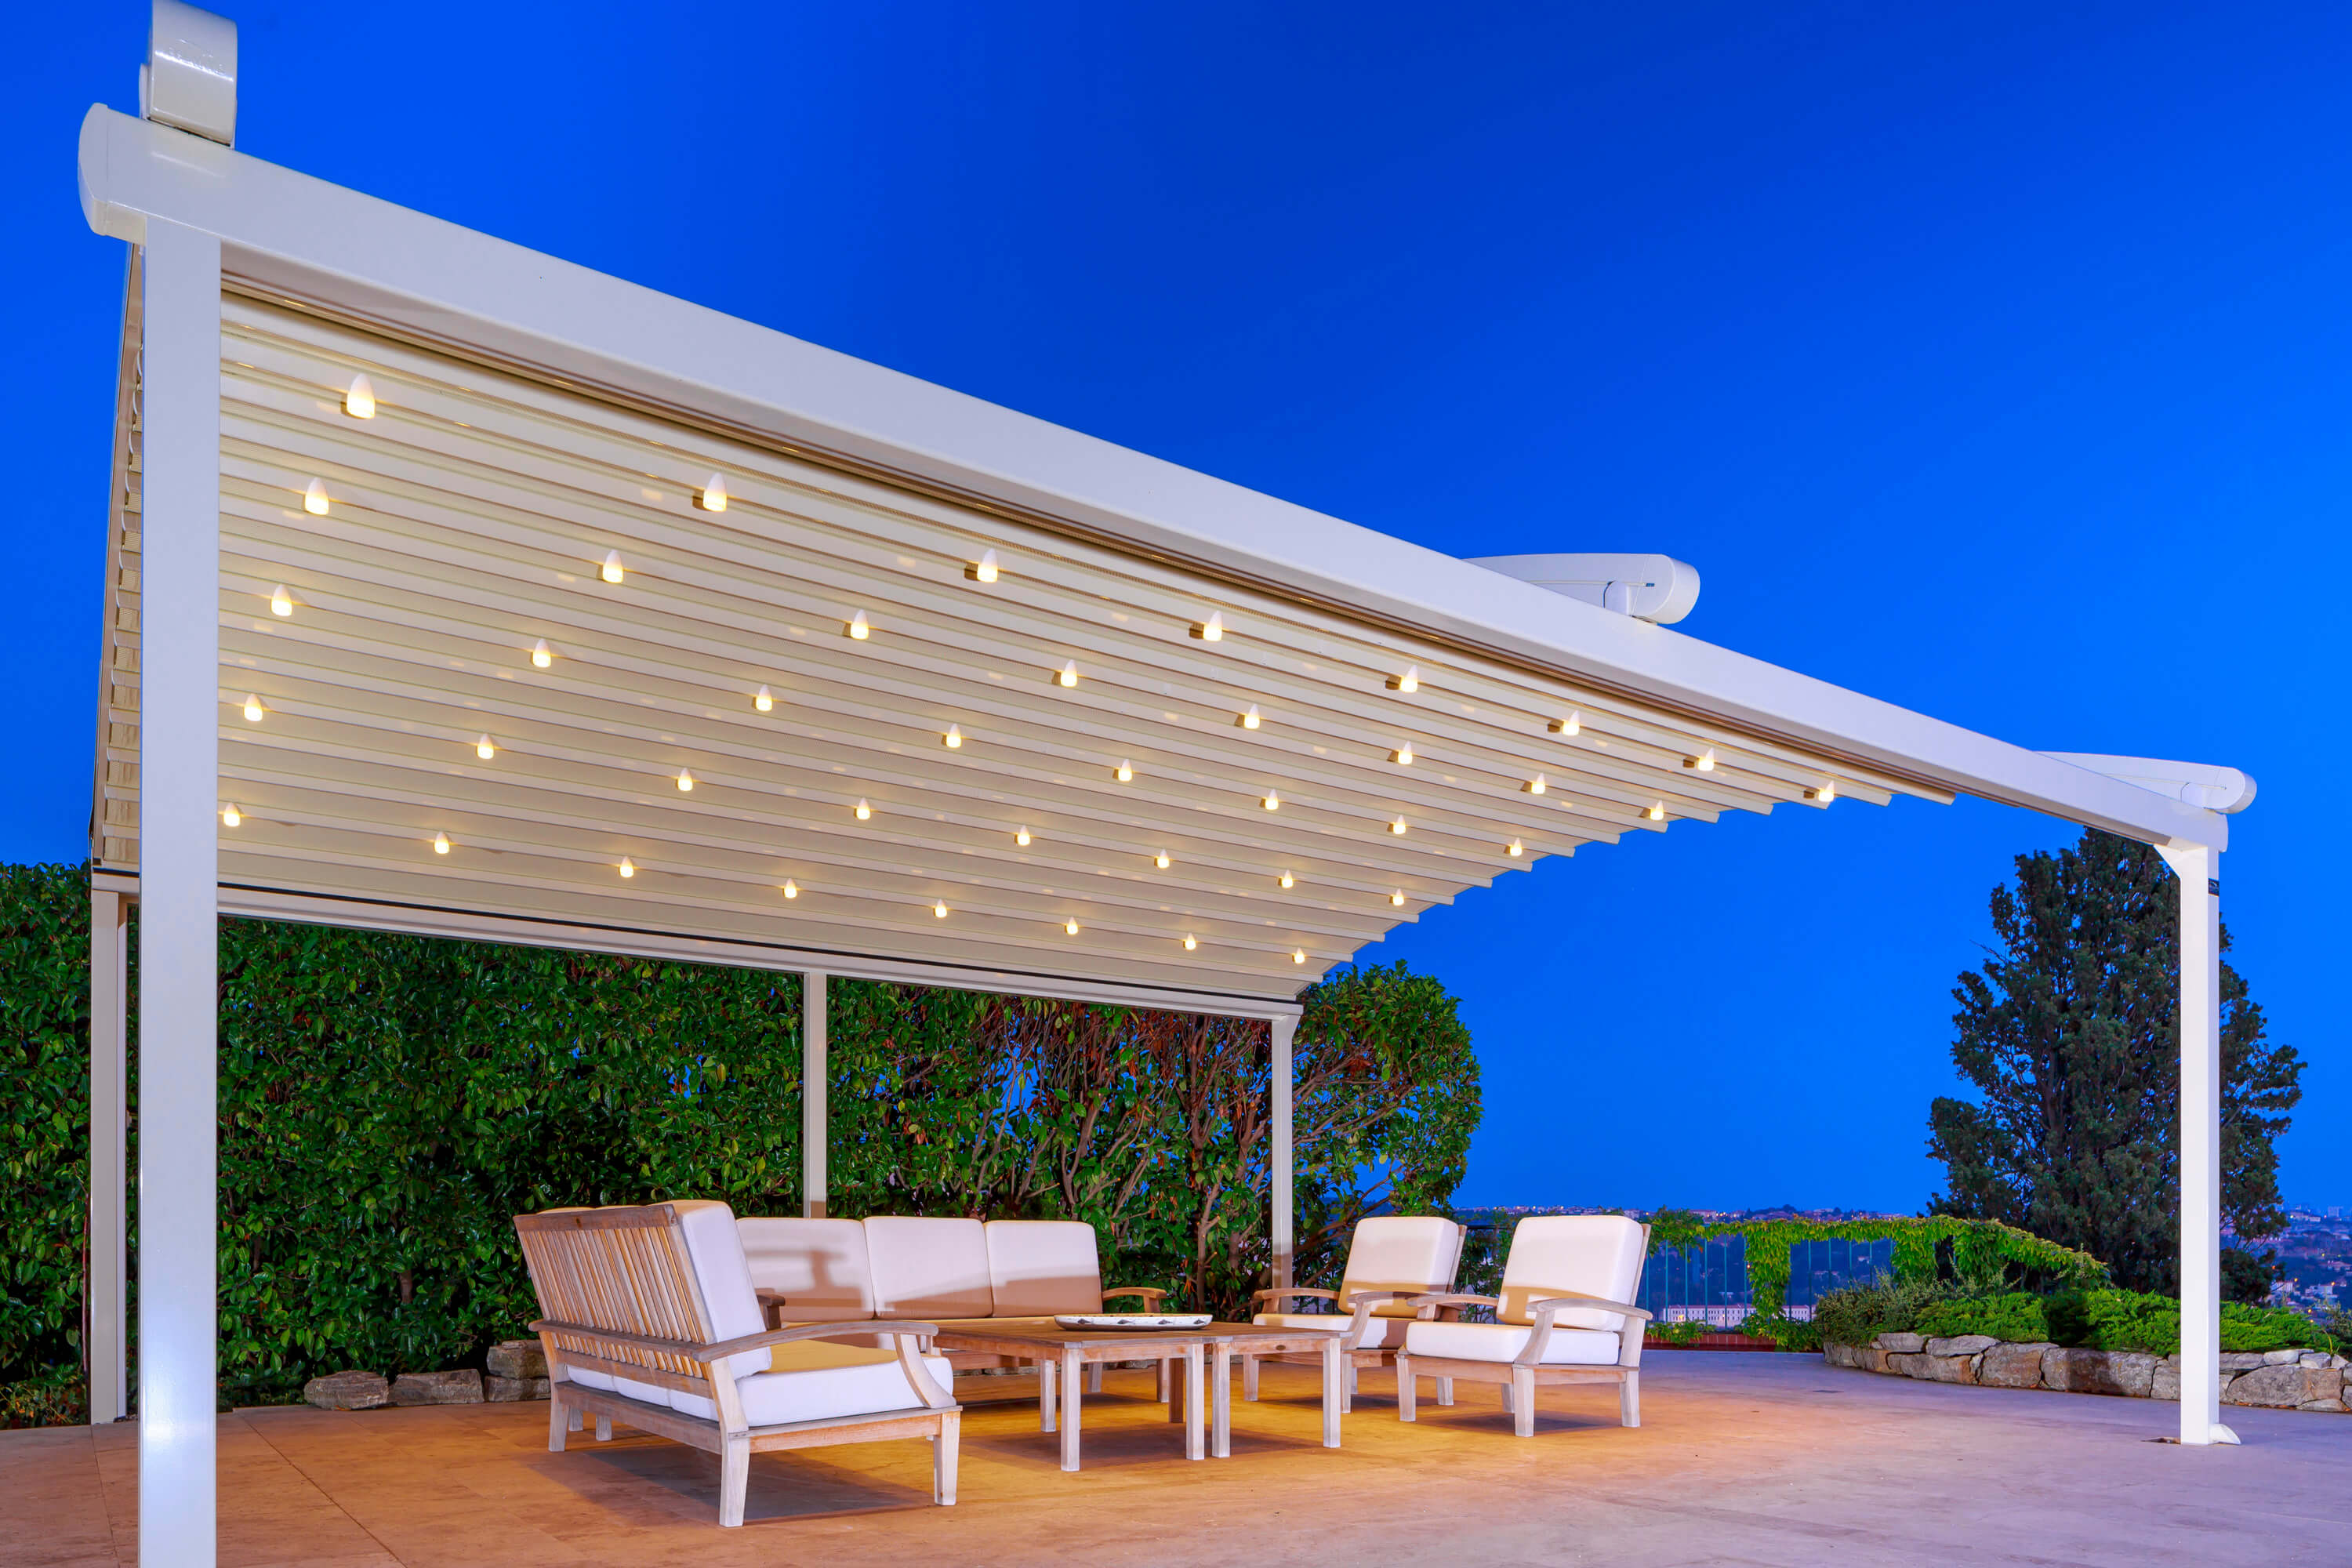 Can Pergolas Be A Perfect Companion To Renovate The Outdoor Space?